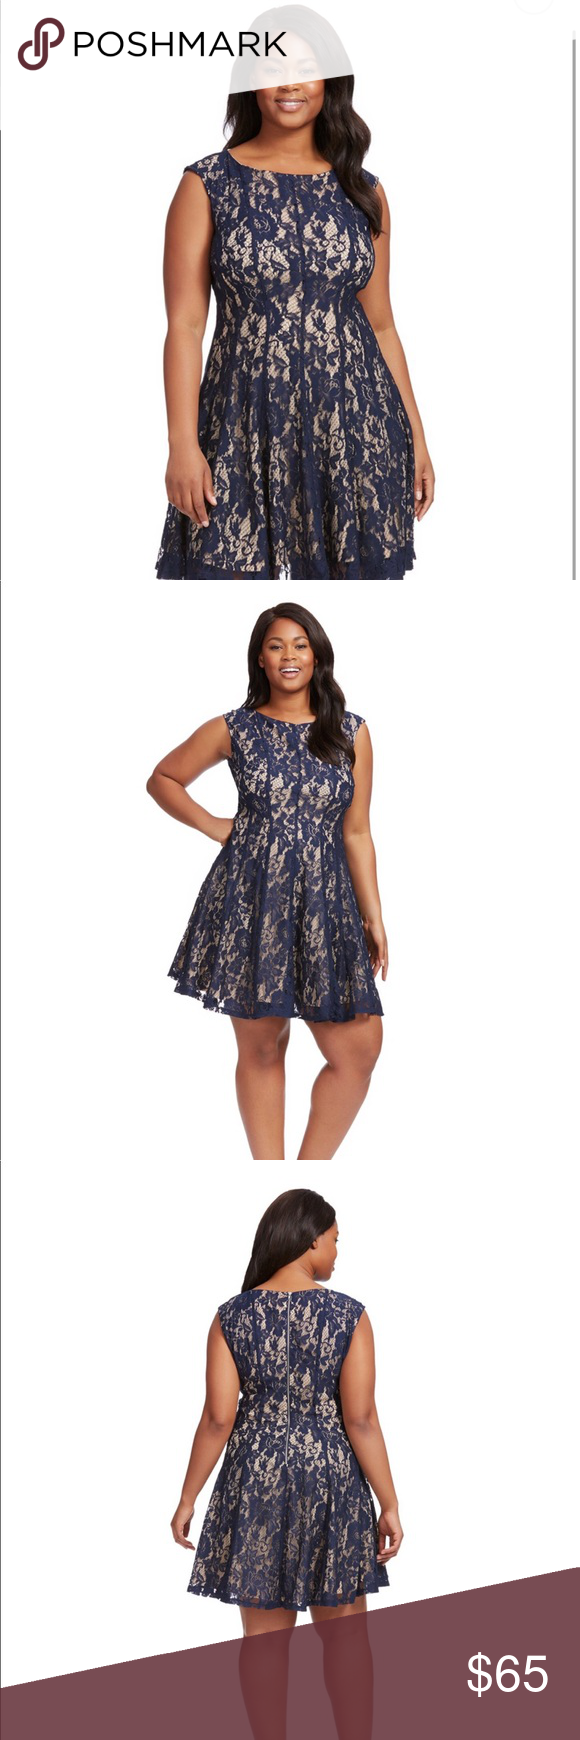 22ebedd69a15 Sleeveless Lace Detail Dress In Nude And Navy Sleeveless lace fit-and-flare  dress with boat neck